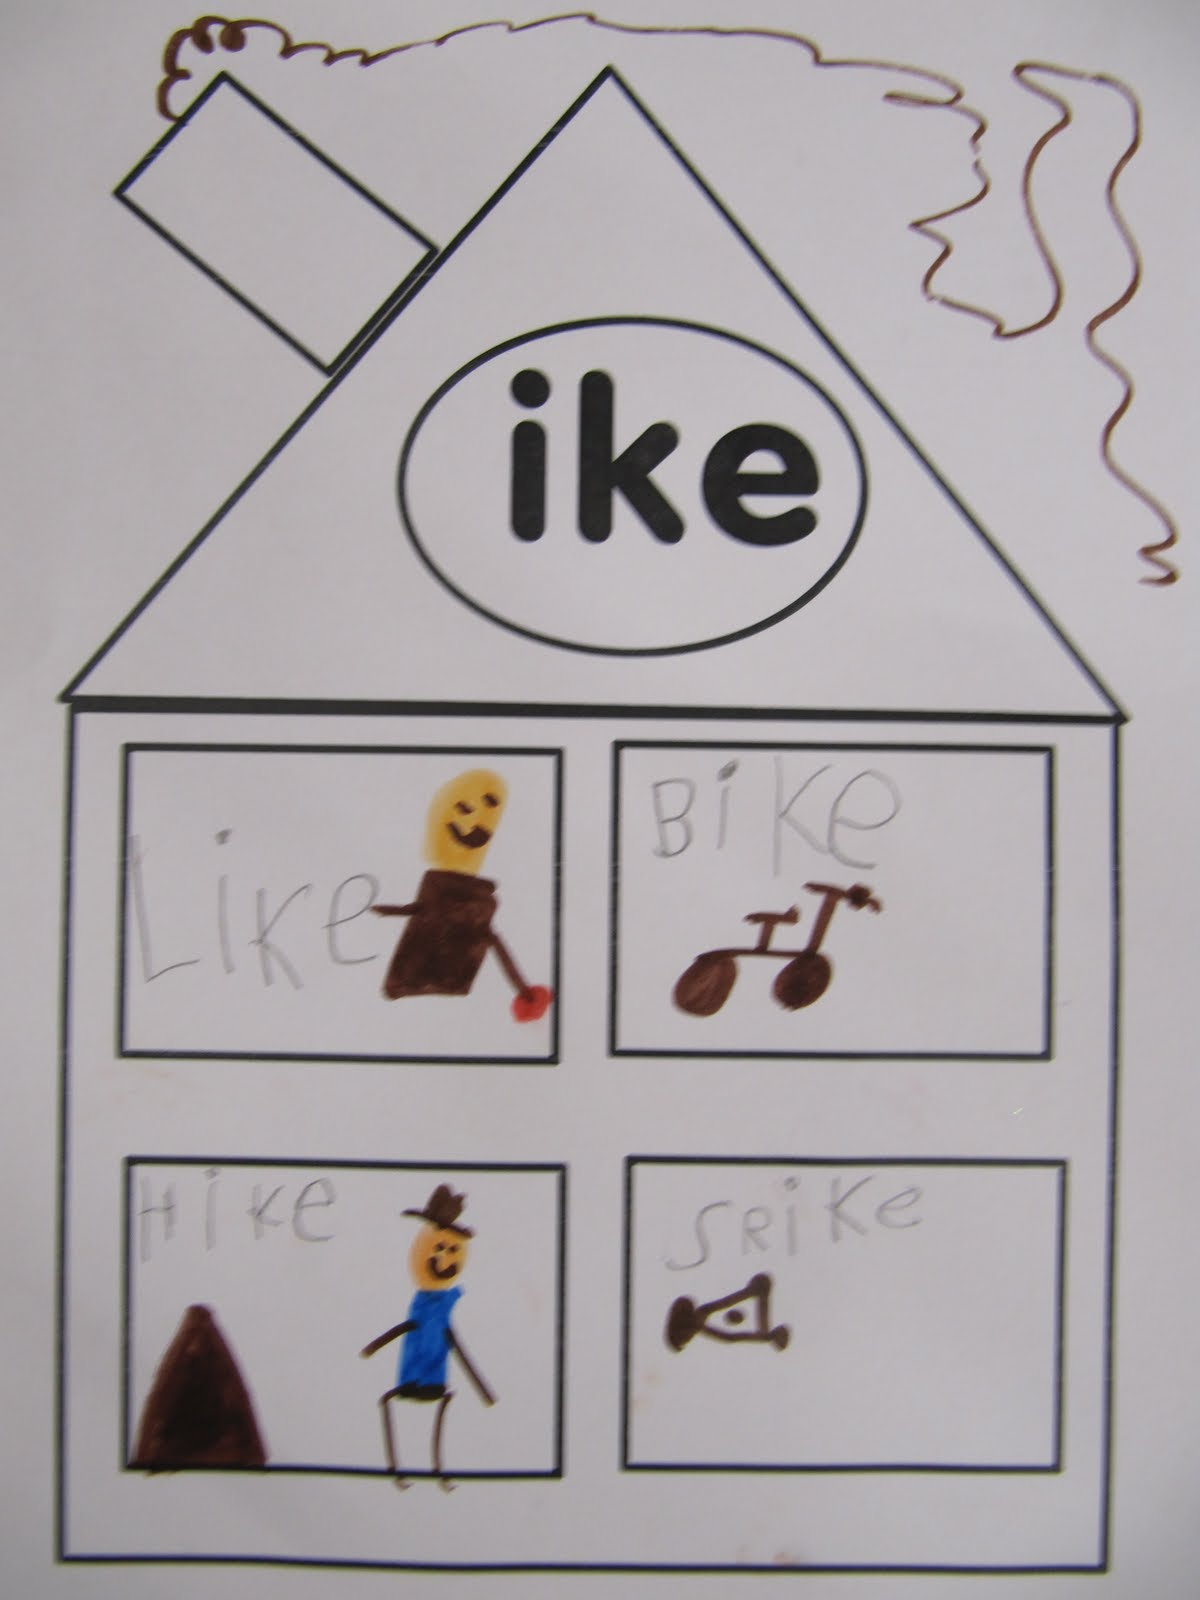 Kc Kindergarten Times The Ike Family